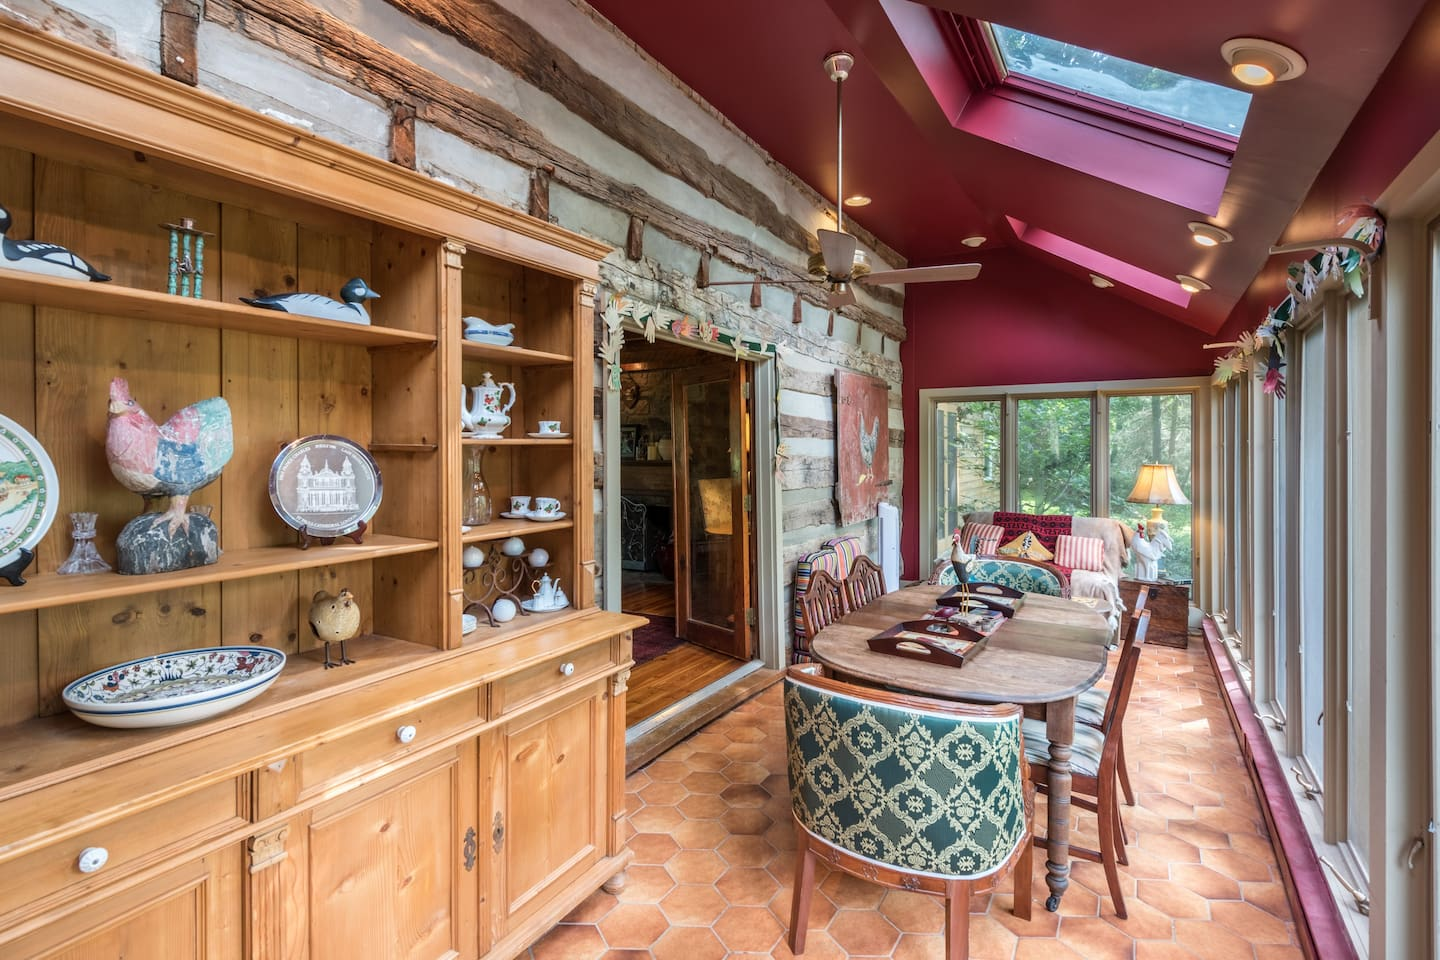 Country Sitting Room off of Main Log Cabin with Views of the 18 acre property